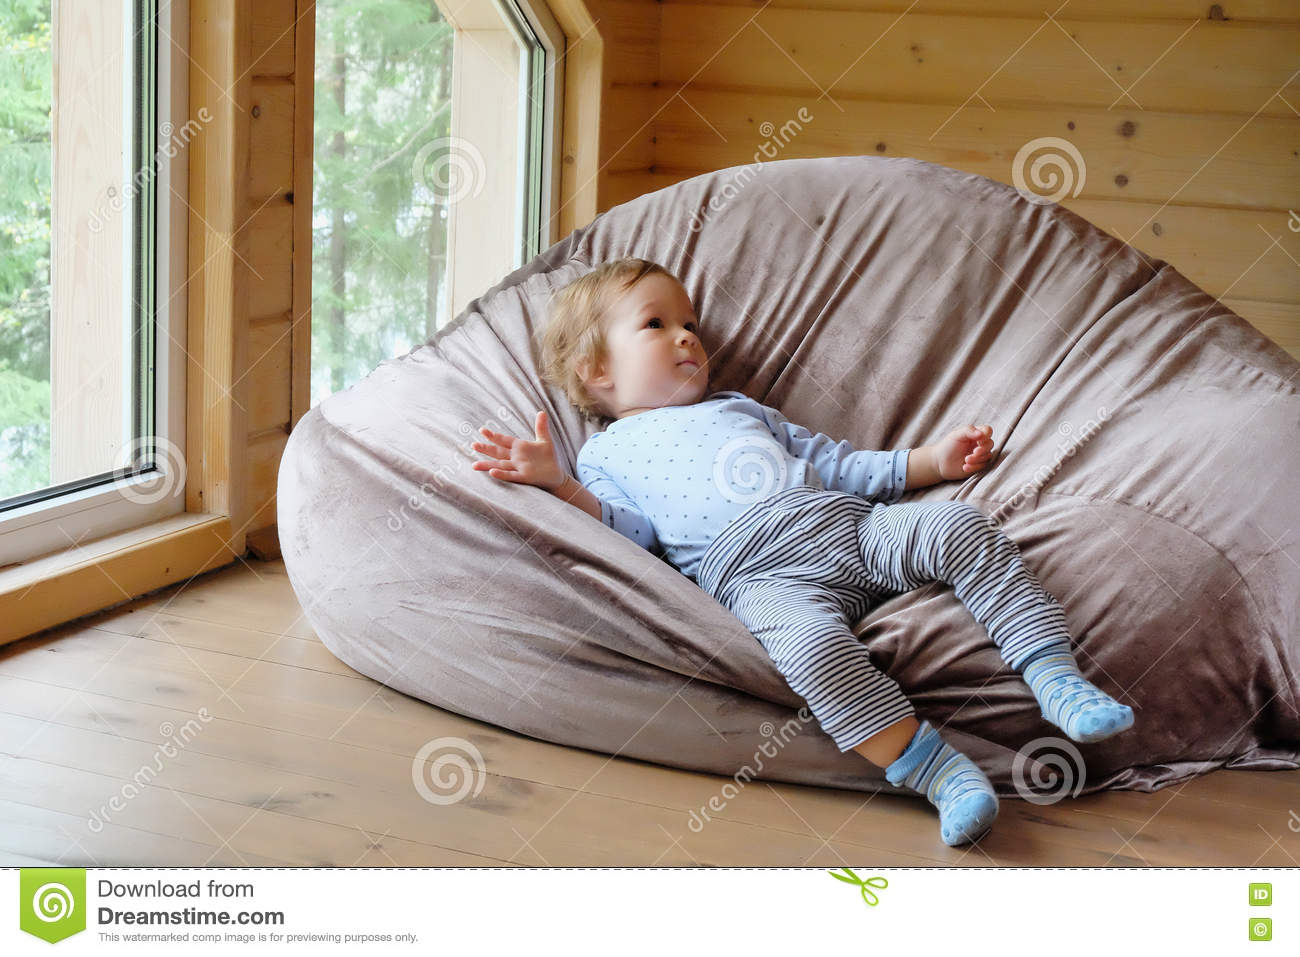 Fabulous Small European Boy Lies On A Bean Bag Stock Image Image Of Caraccident5 Cool Chair Designs And Ideas Caraccident5Info